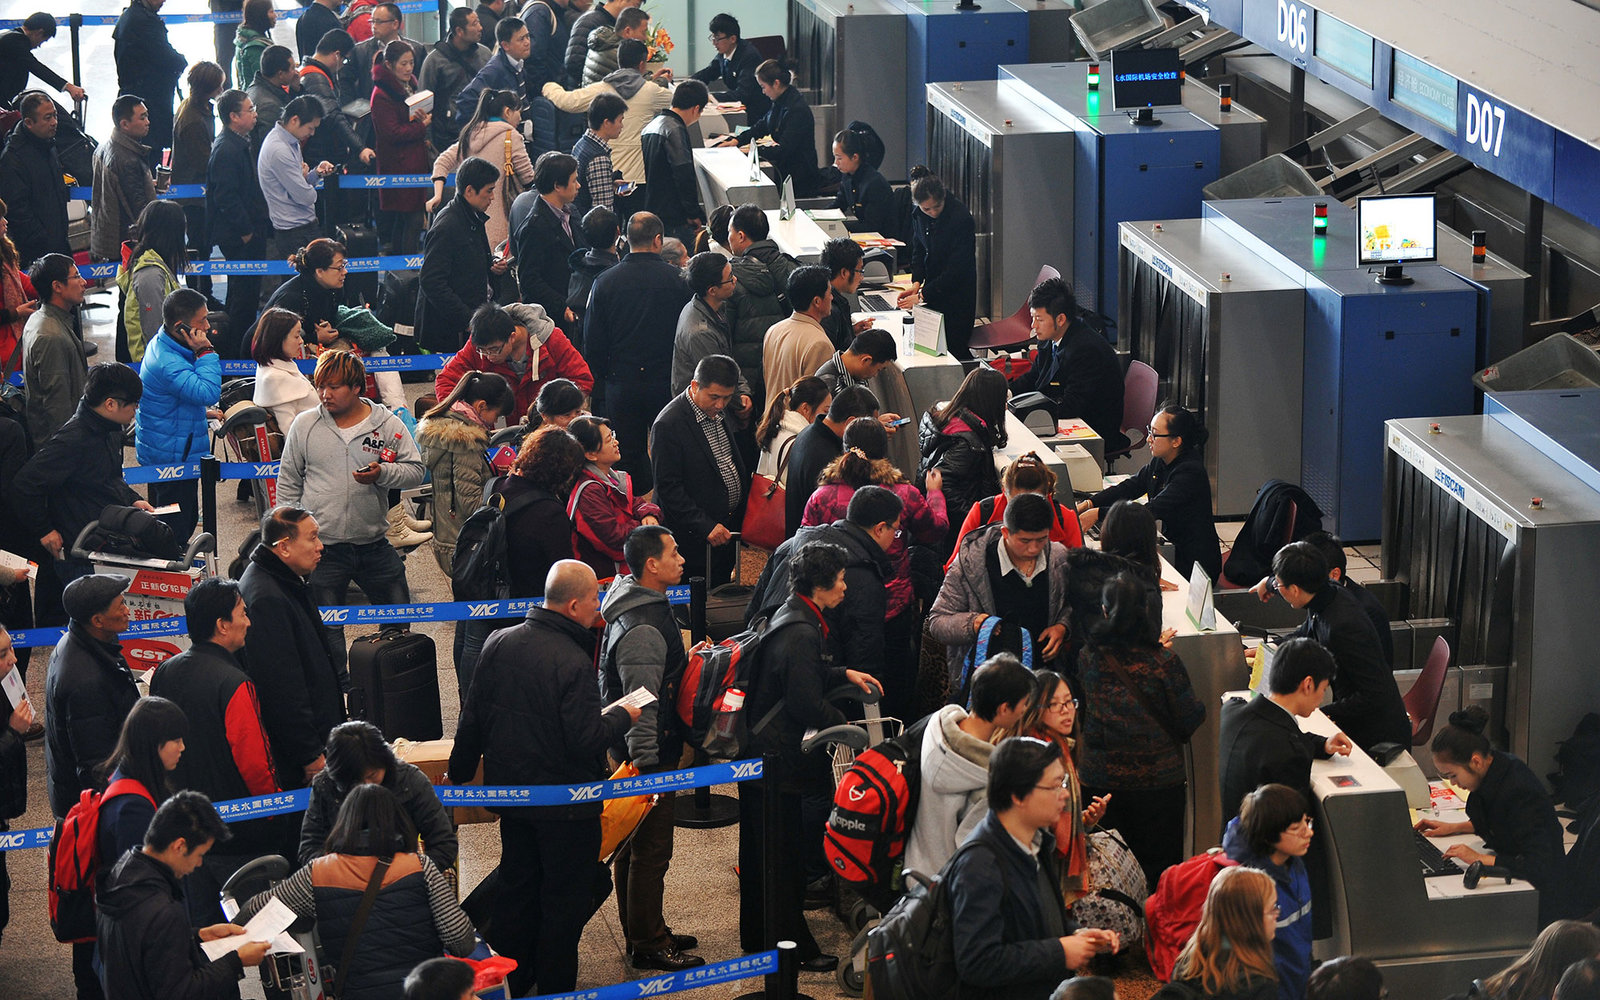 crowded lines at United